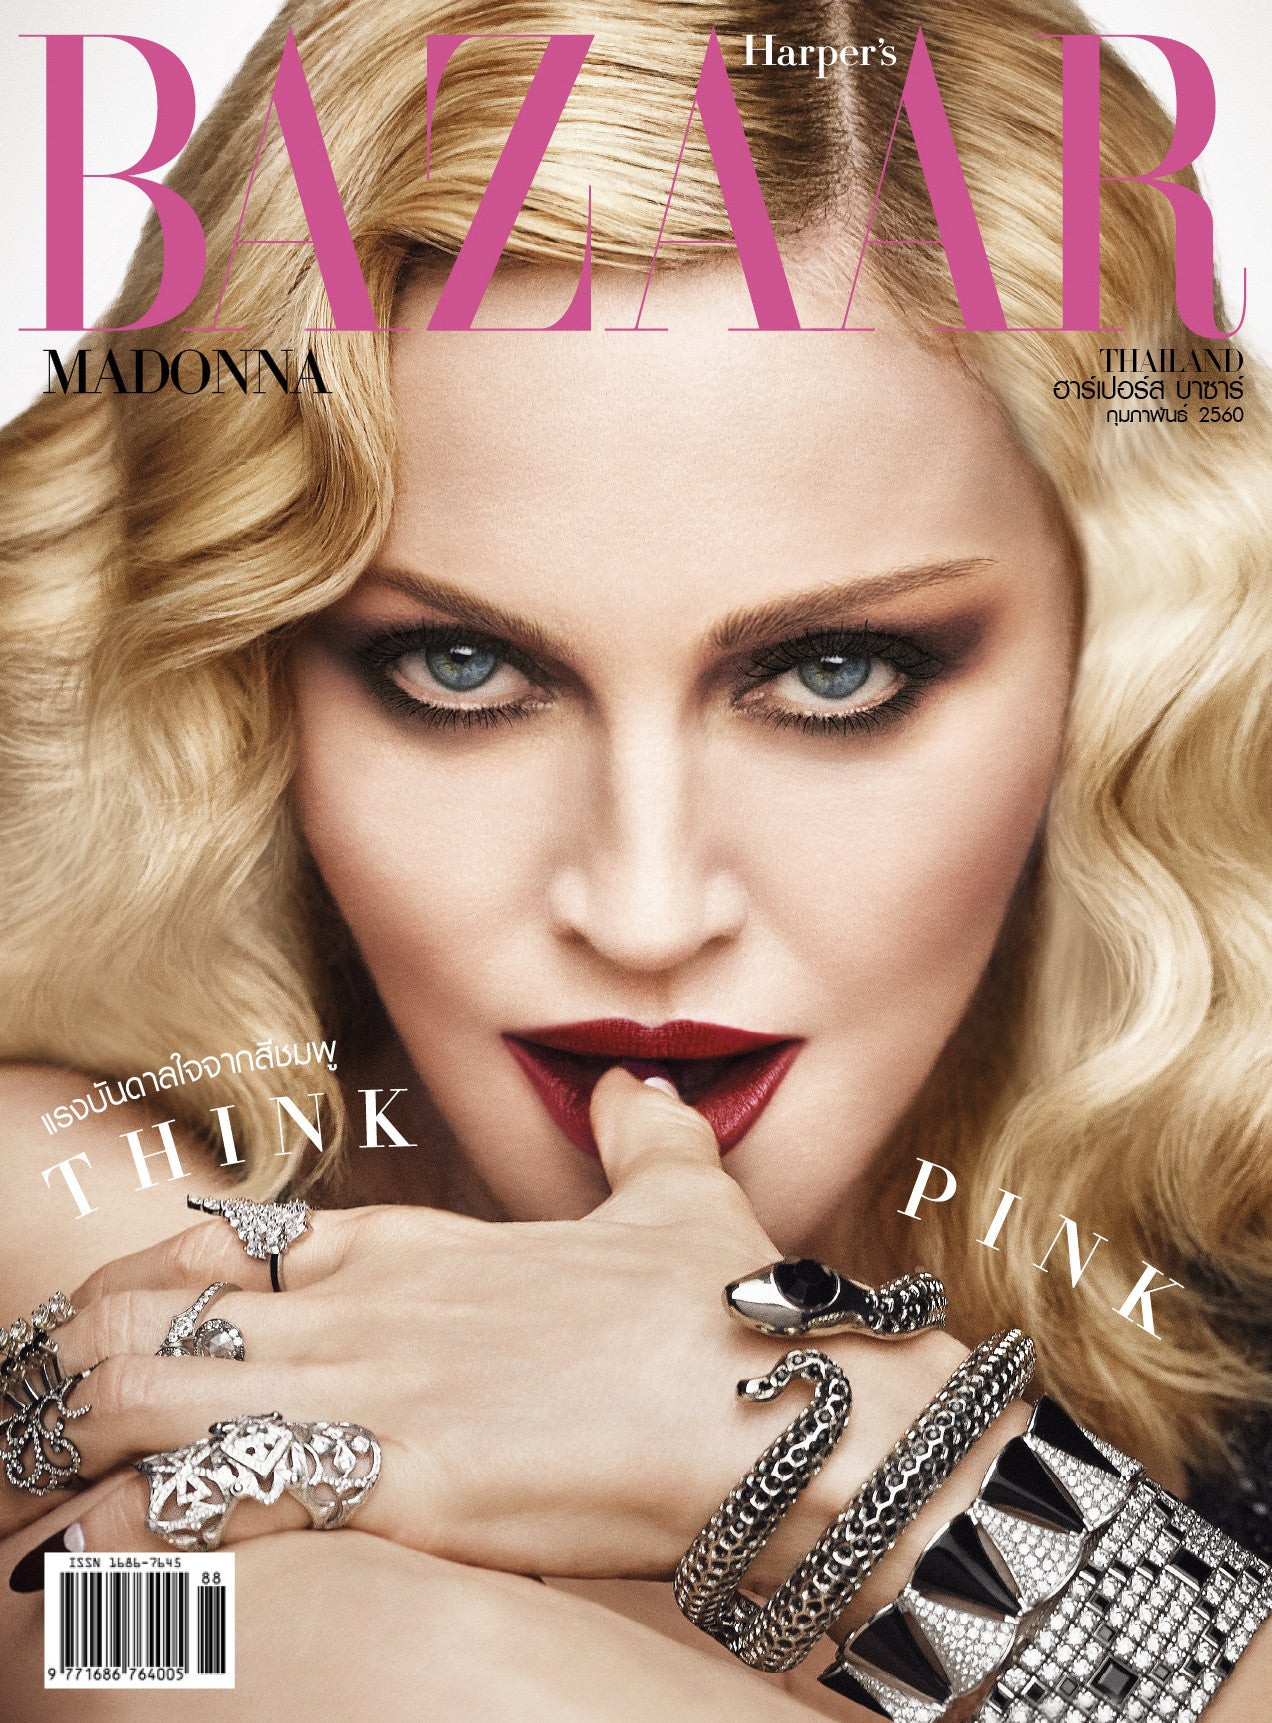 Harper's Bazaar Thailand February 2017 issue title page with madonna